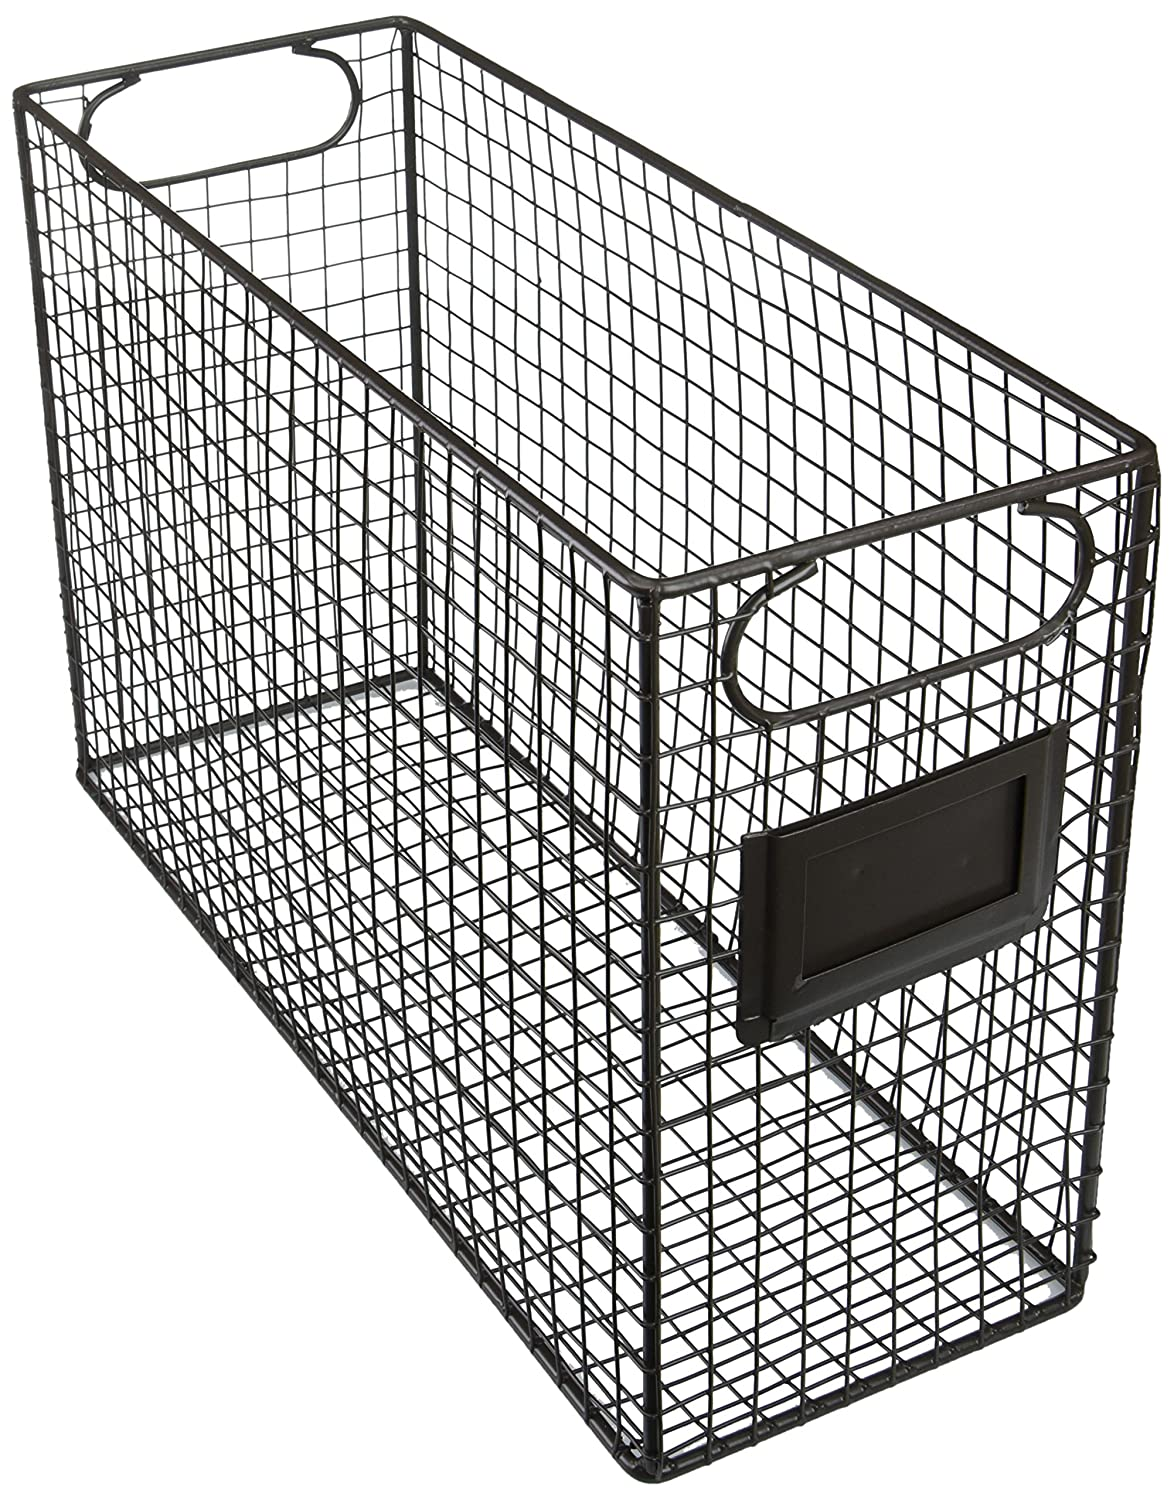 Amazon.com : Mesh Wire Brown Metal Document Storage Container ...